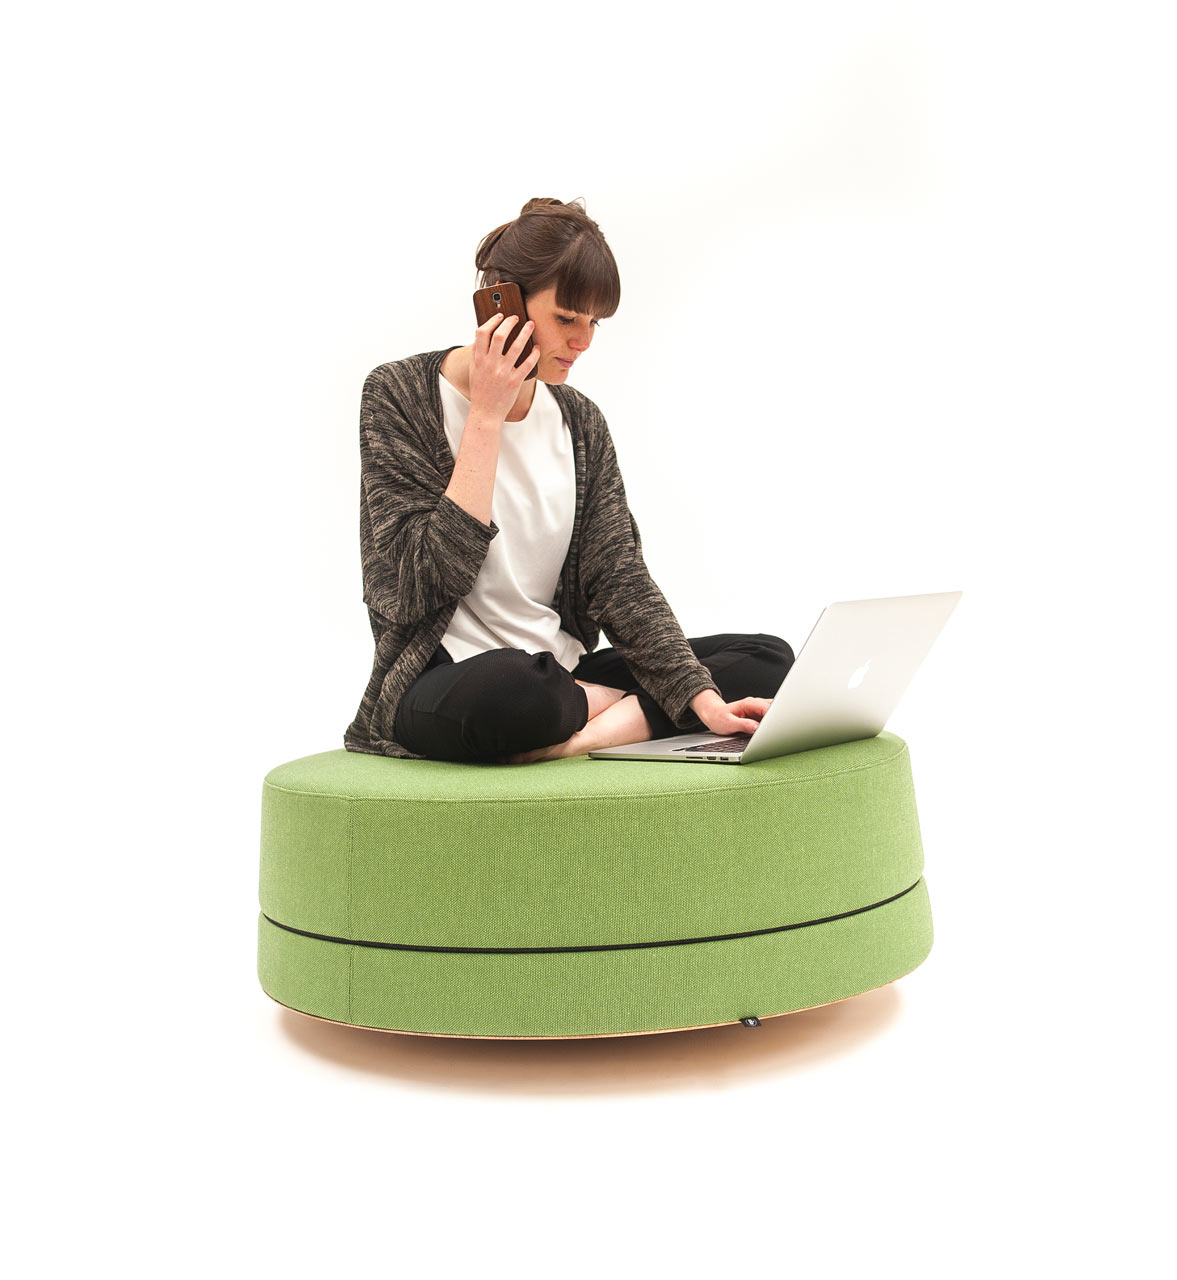 Buzzispace buzzibalance pouf 139 design smow blog english - Design pouf ...